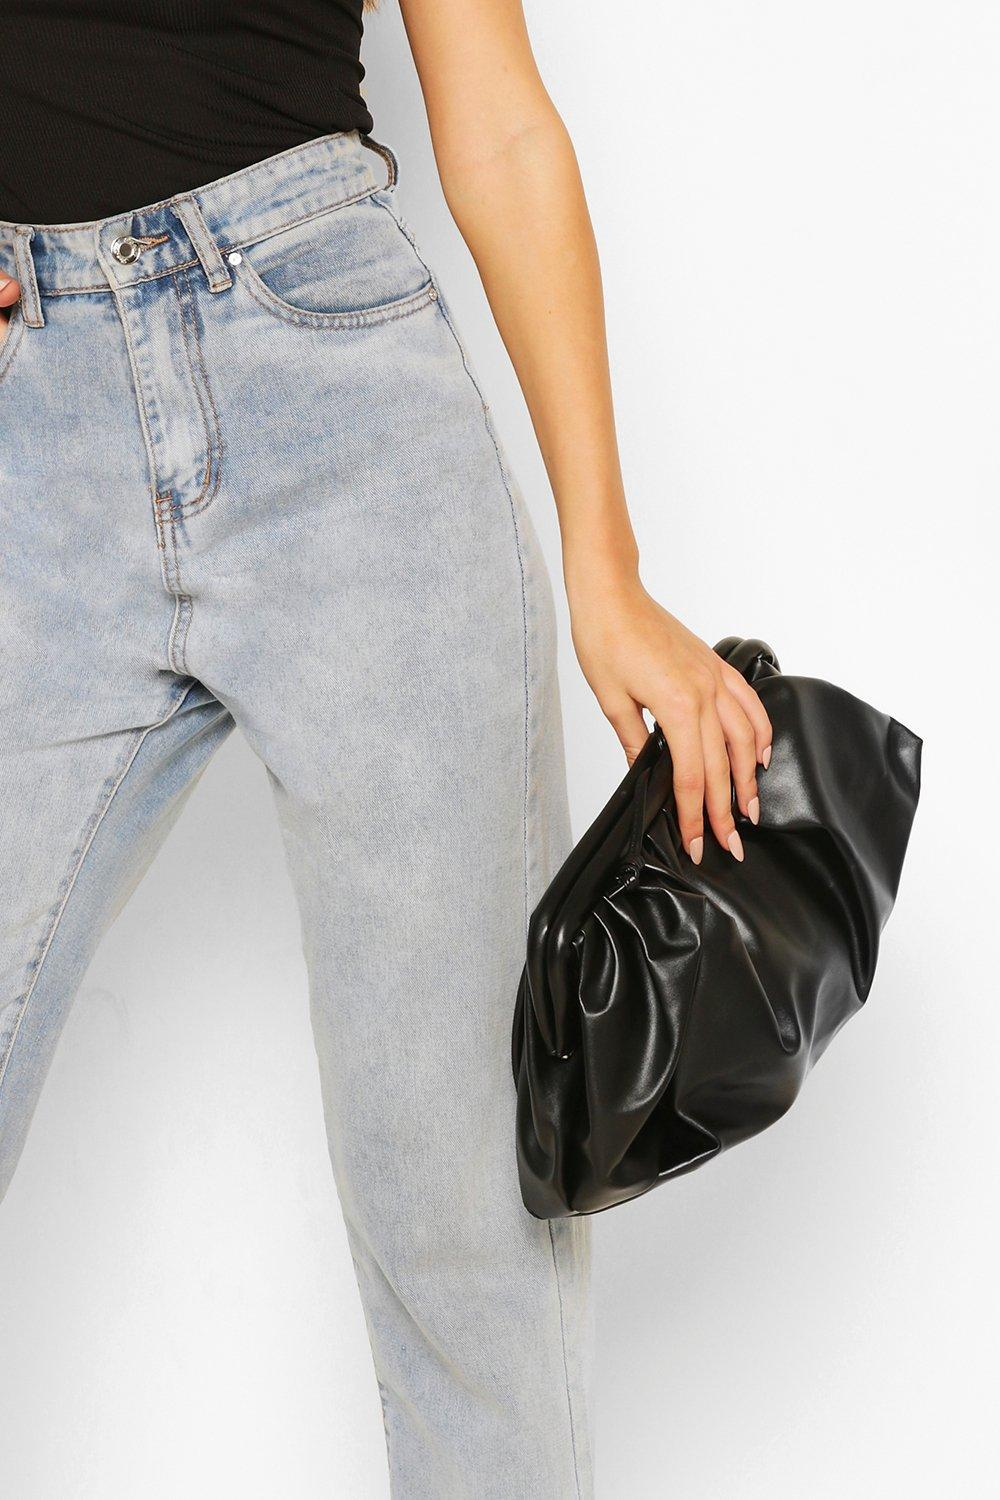 boohoo Womens Slouchy Oversized Pu Clutch & Strap Bag - Black - One Size, Black